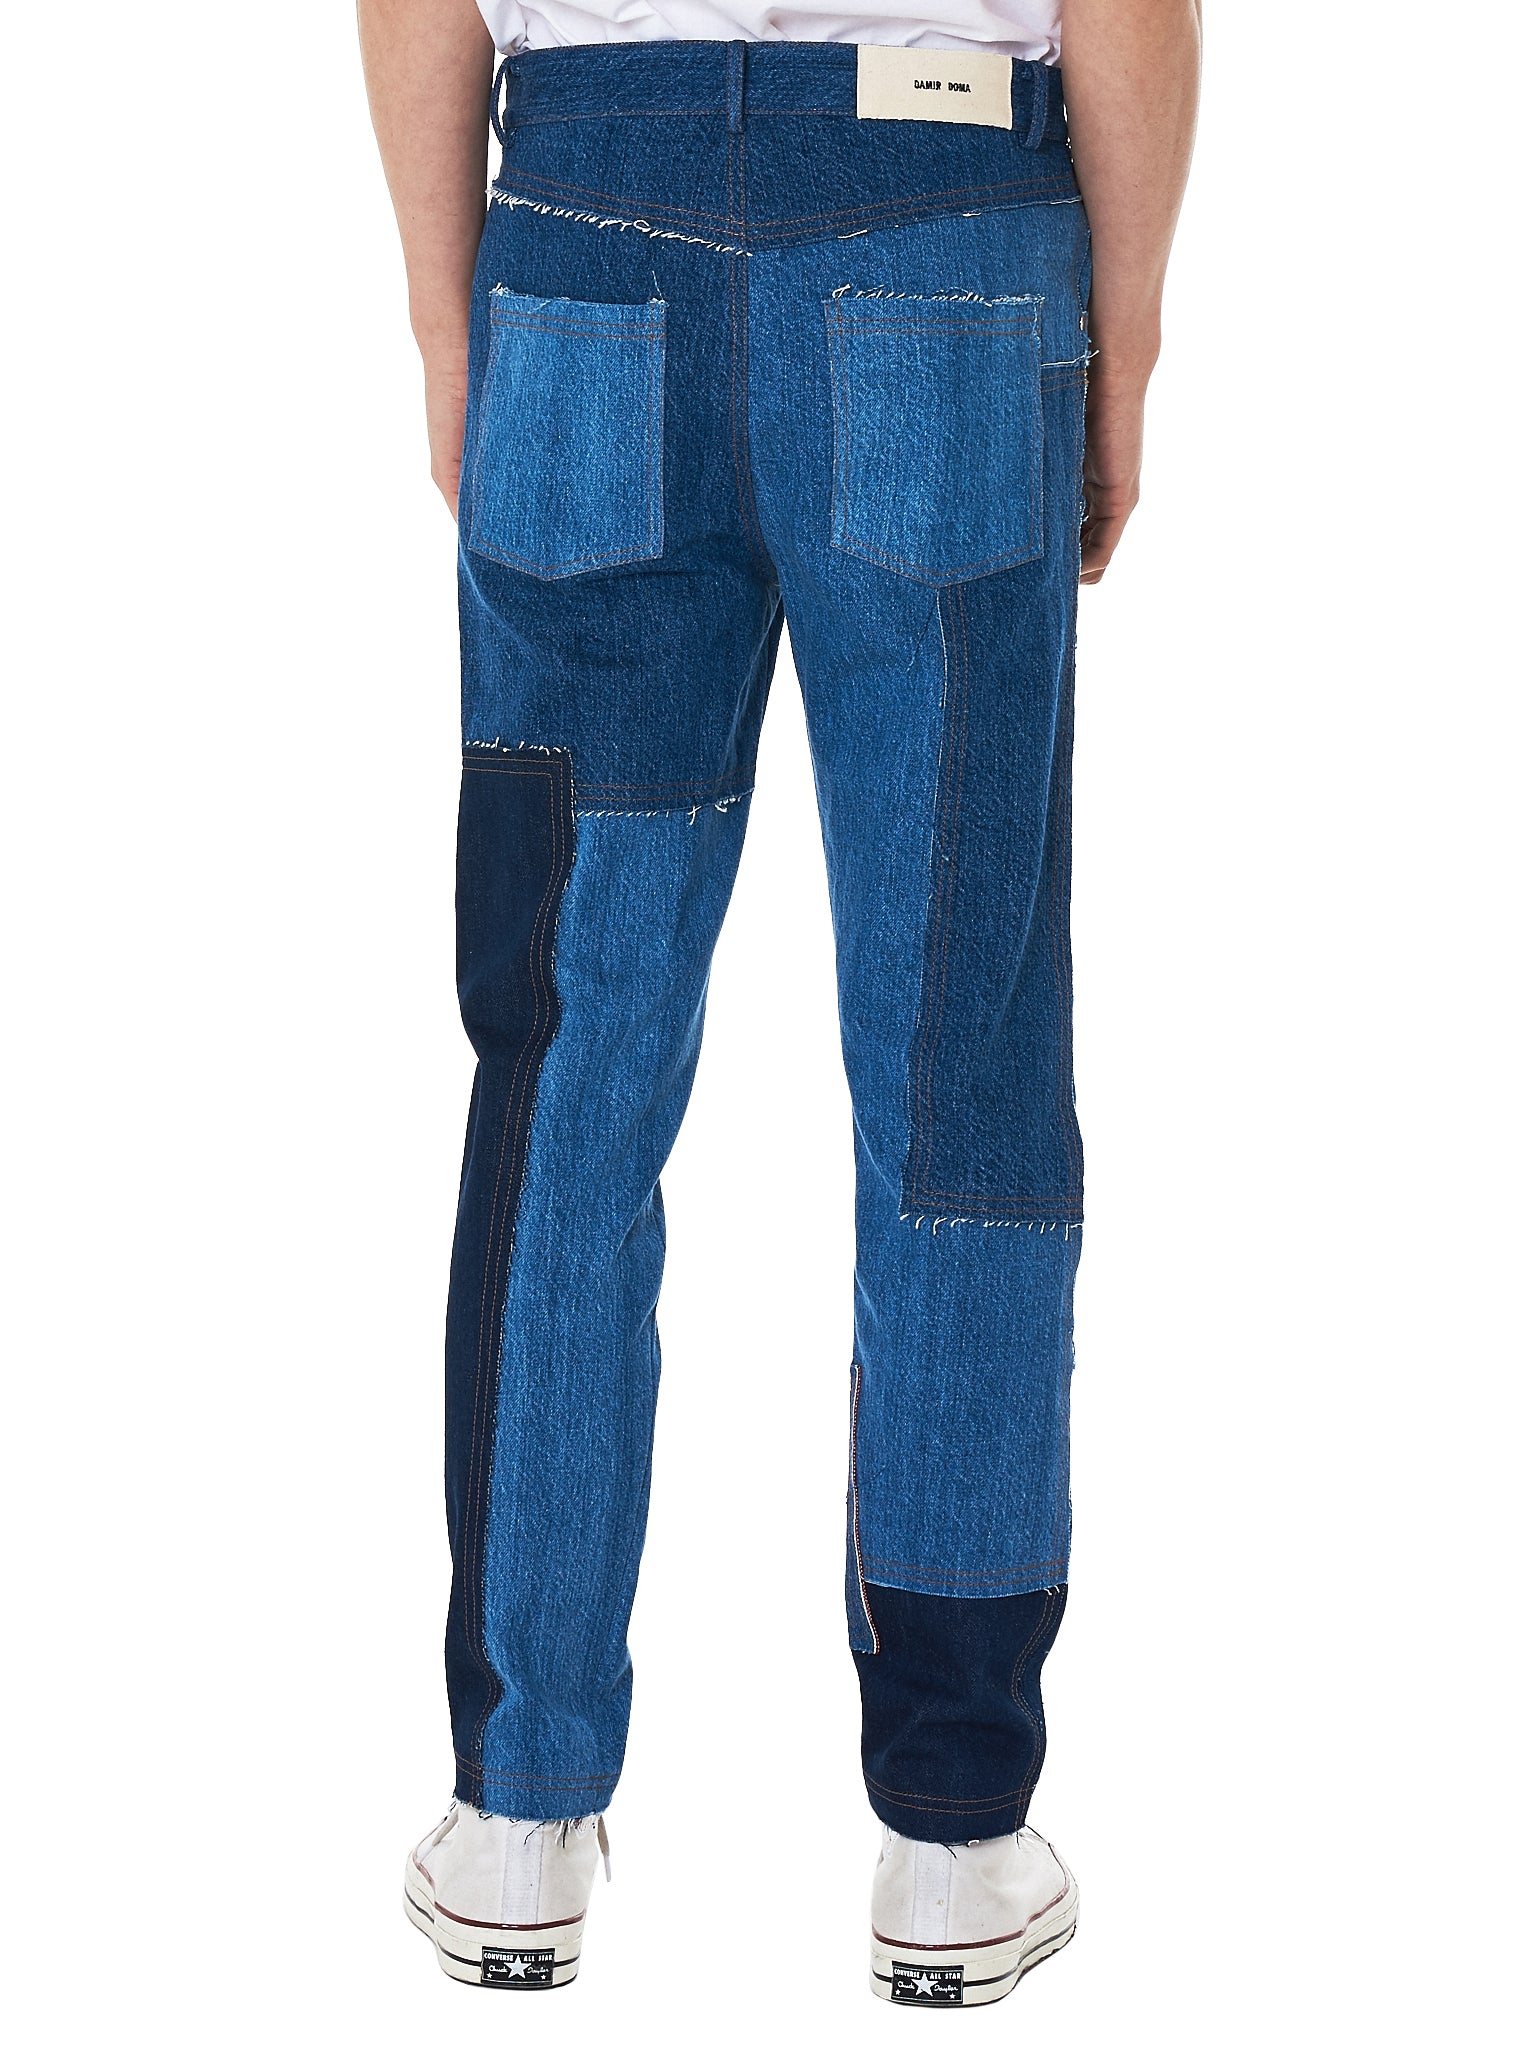 Damir doma patchwork denim - H.Lorenzo back